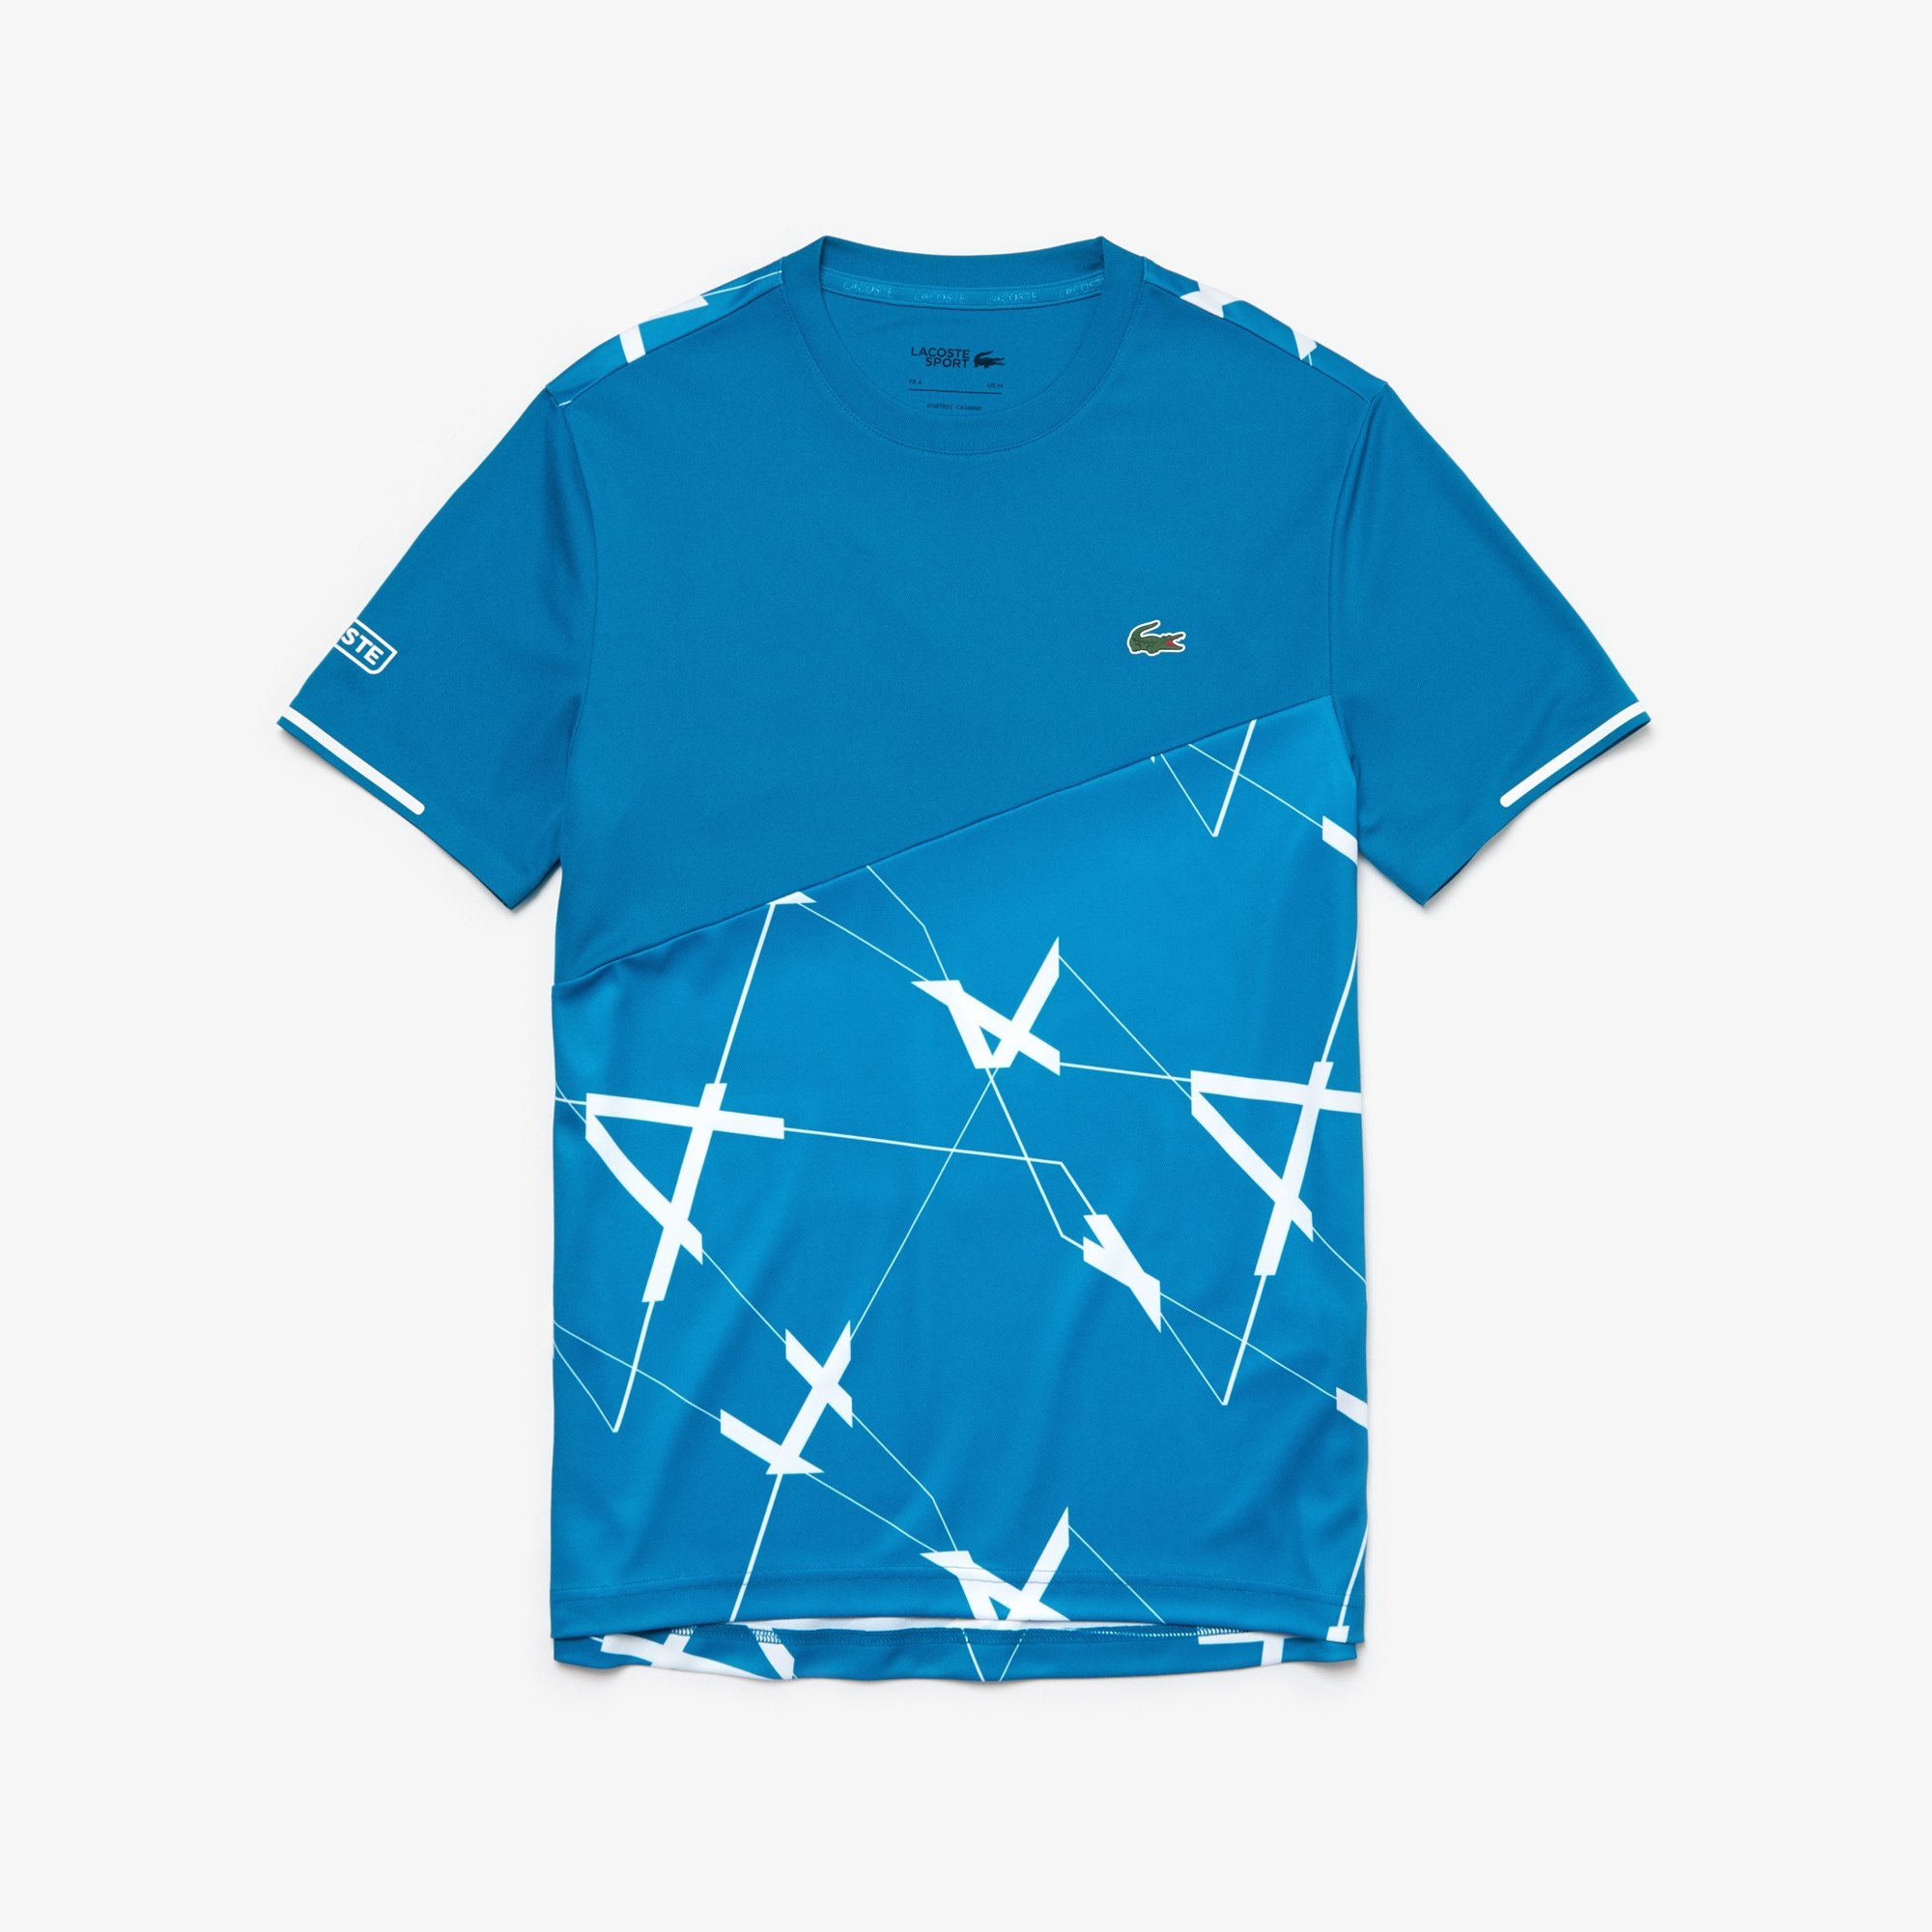 Men's Lacoste SPORT Geometric Design Breathable Piqué T-shirt